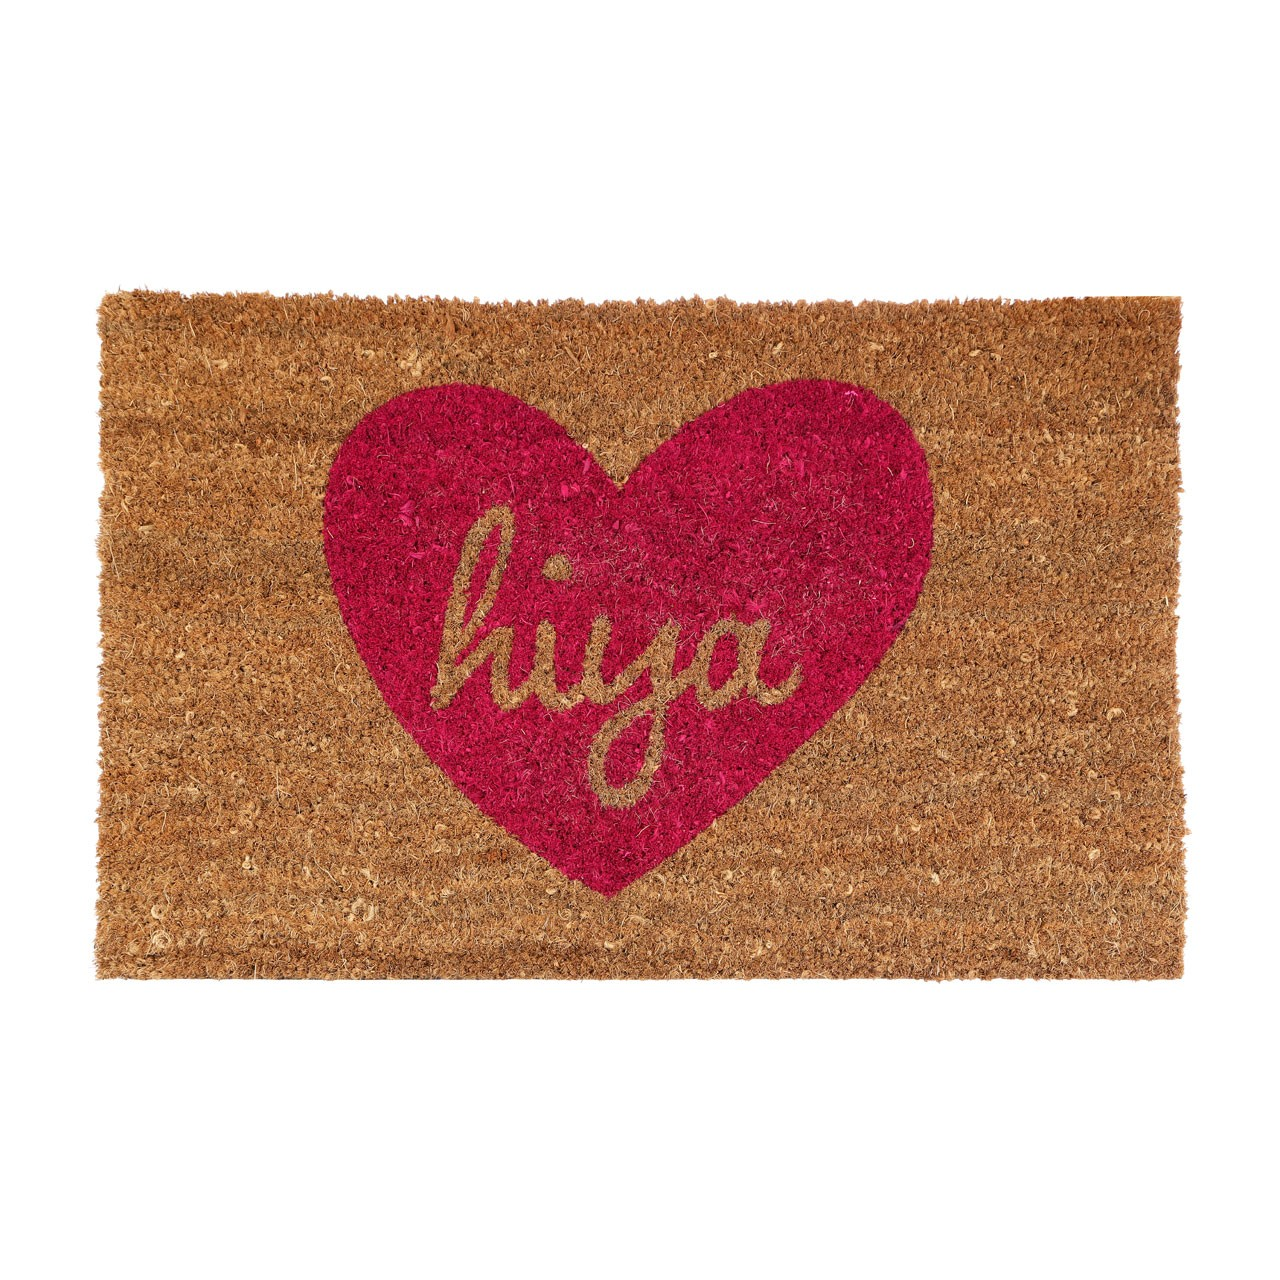 "Prime Furnishing ""Hiya"" Doormat, PVC Backed Coir"